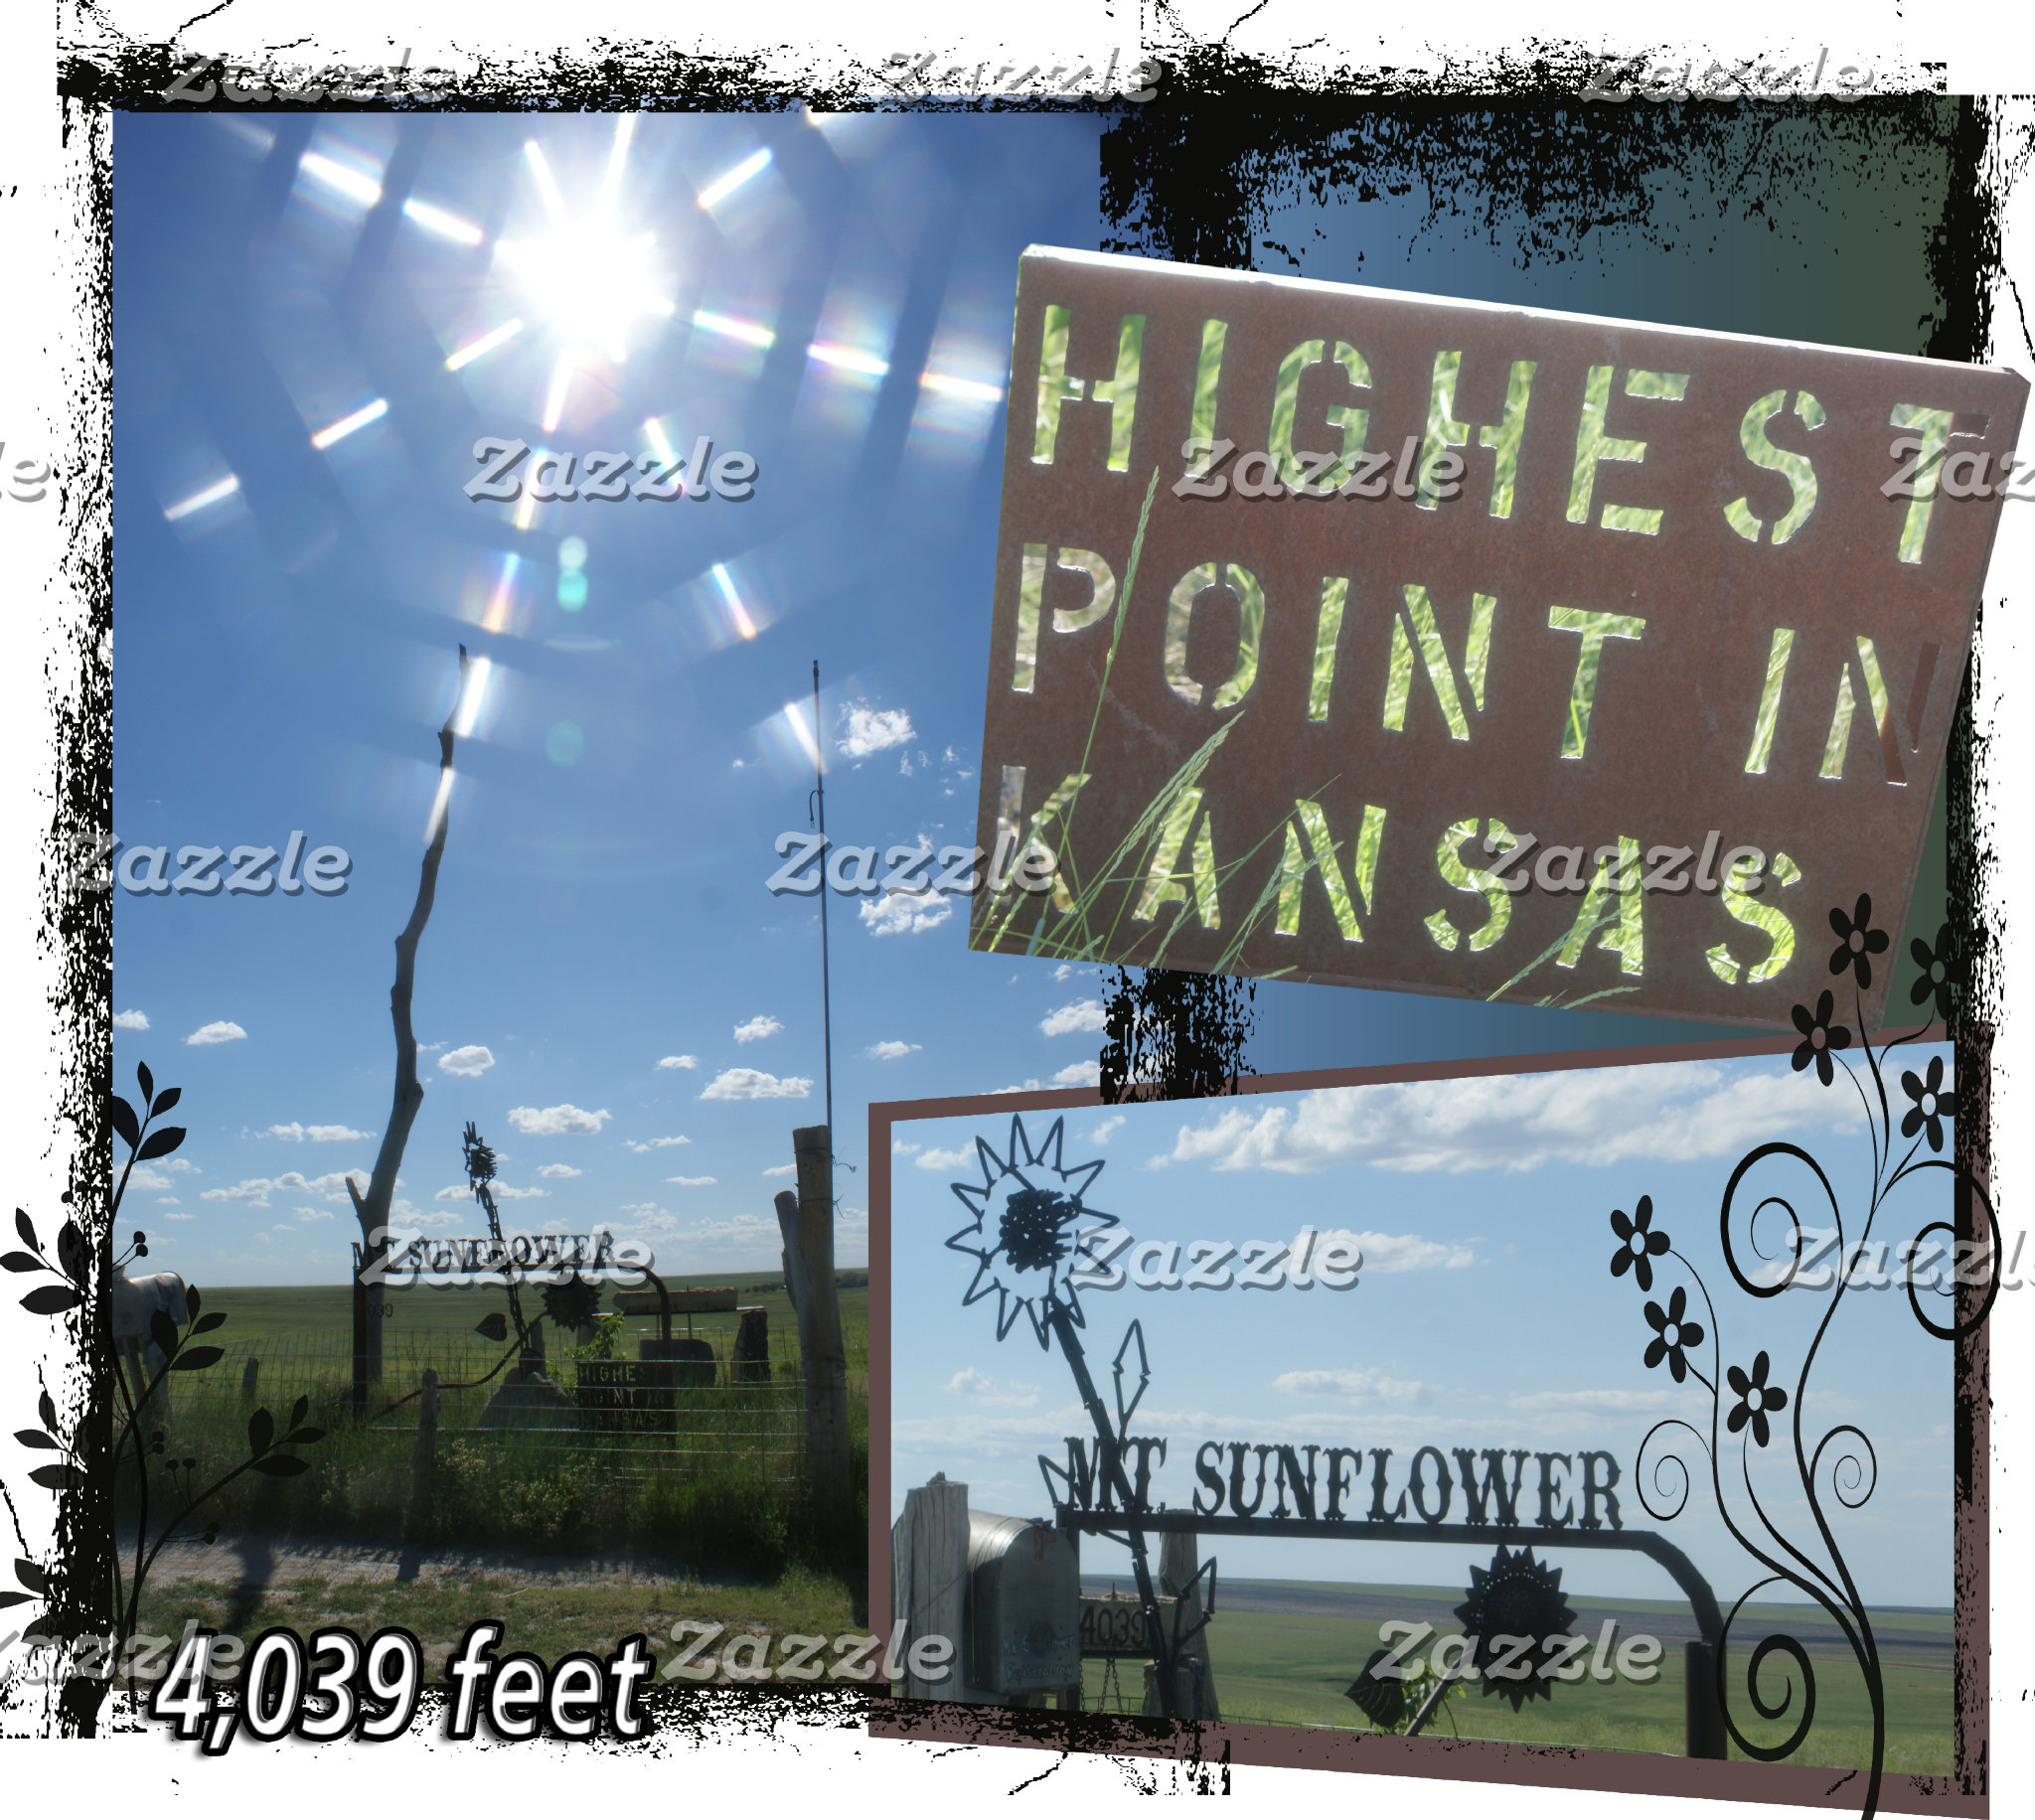 HIGH POINT KANSAS -Mt. SUNFLOWER